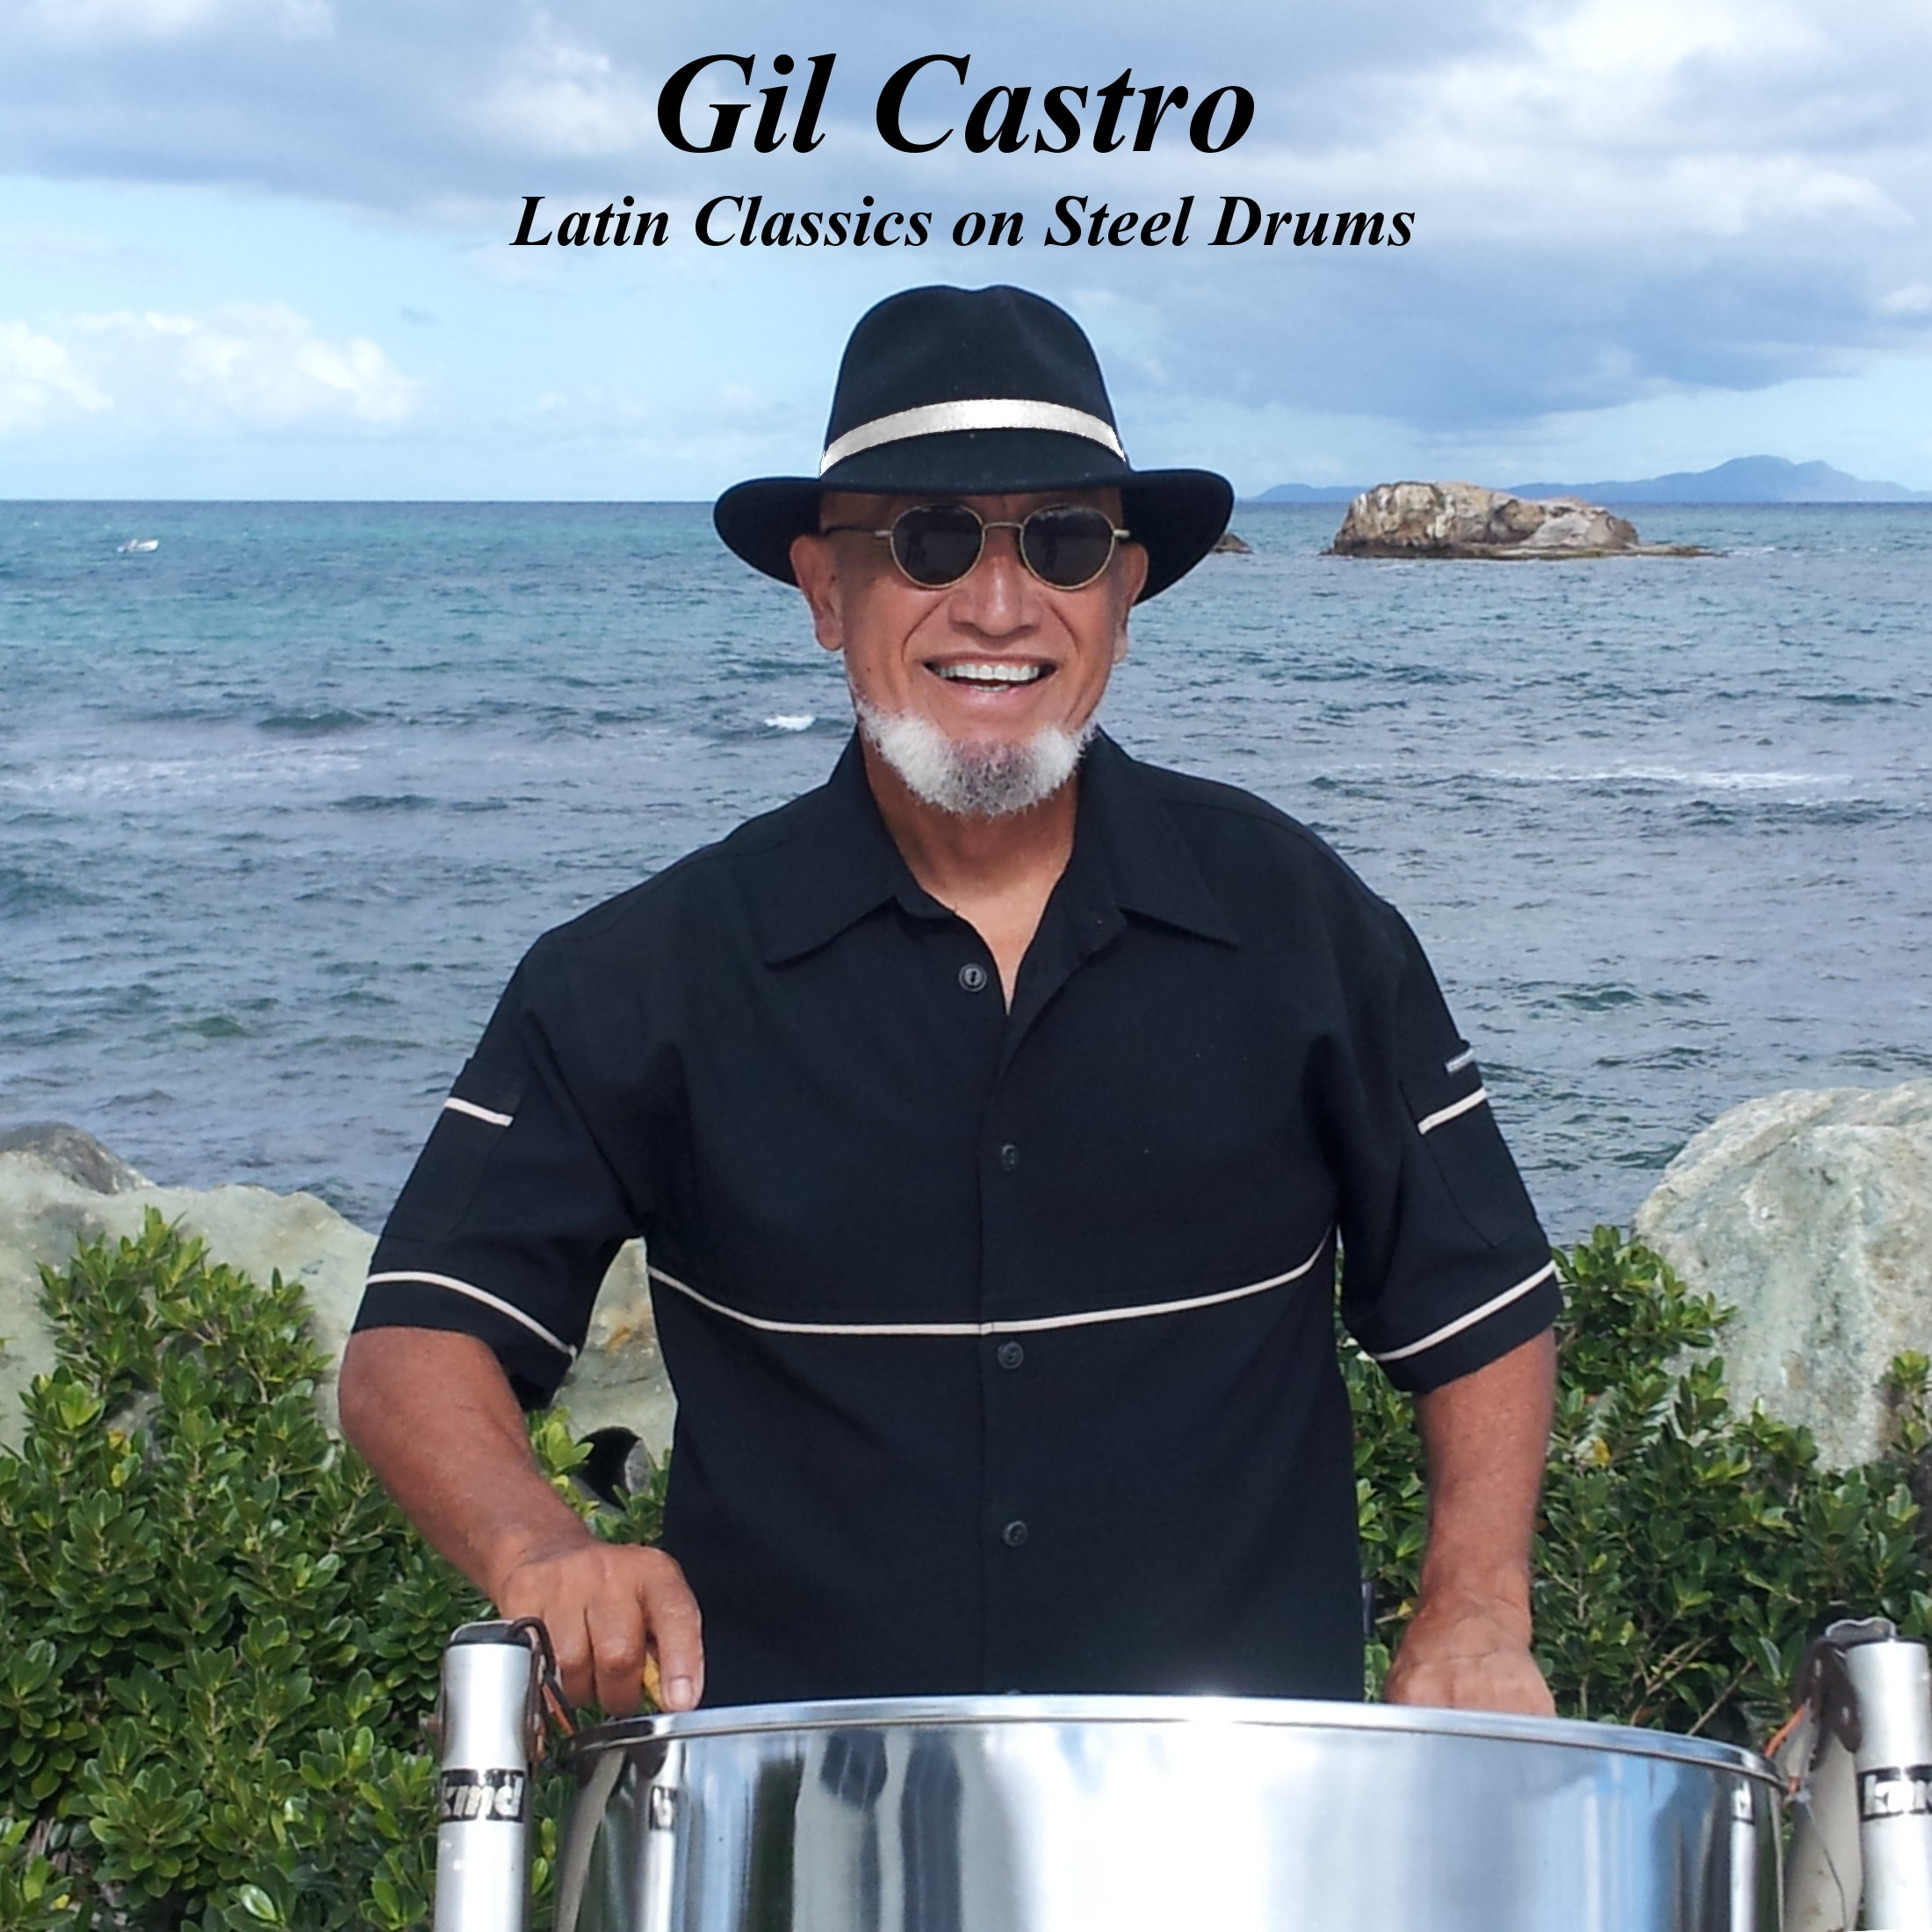 Gil Castro's Latin Classics on Steel Drums CD cover